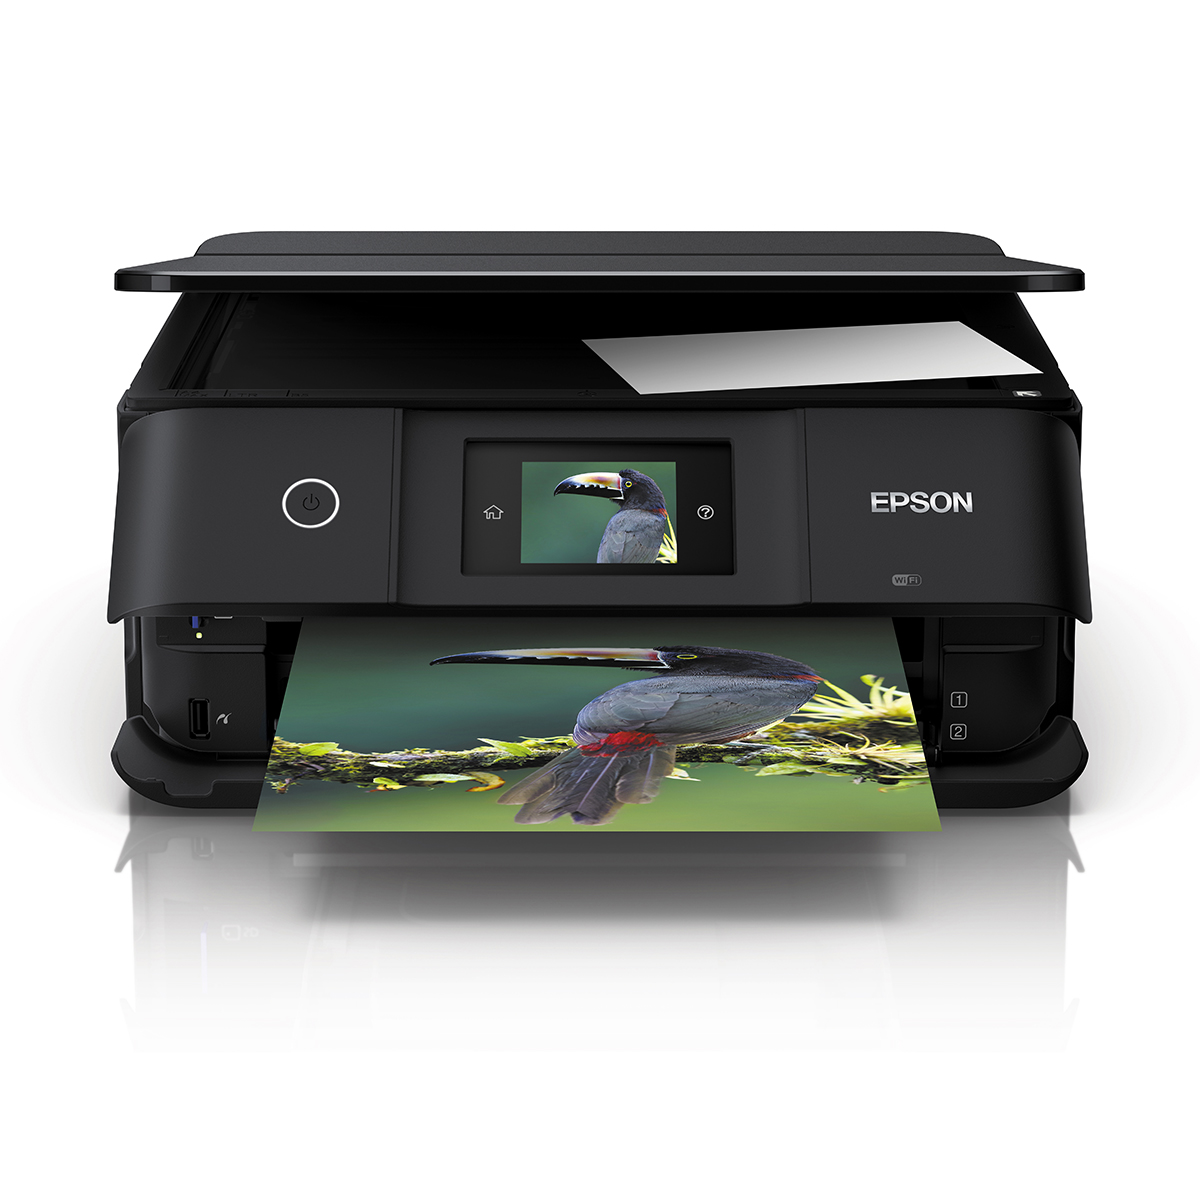 Epson Expression Photo XP-8500 All in One A4 Colour Inkjet Multifunction